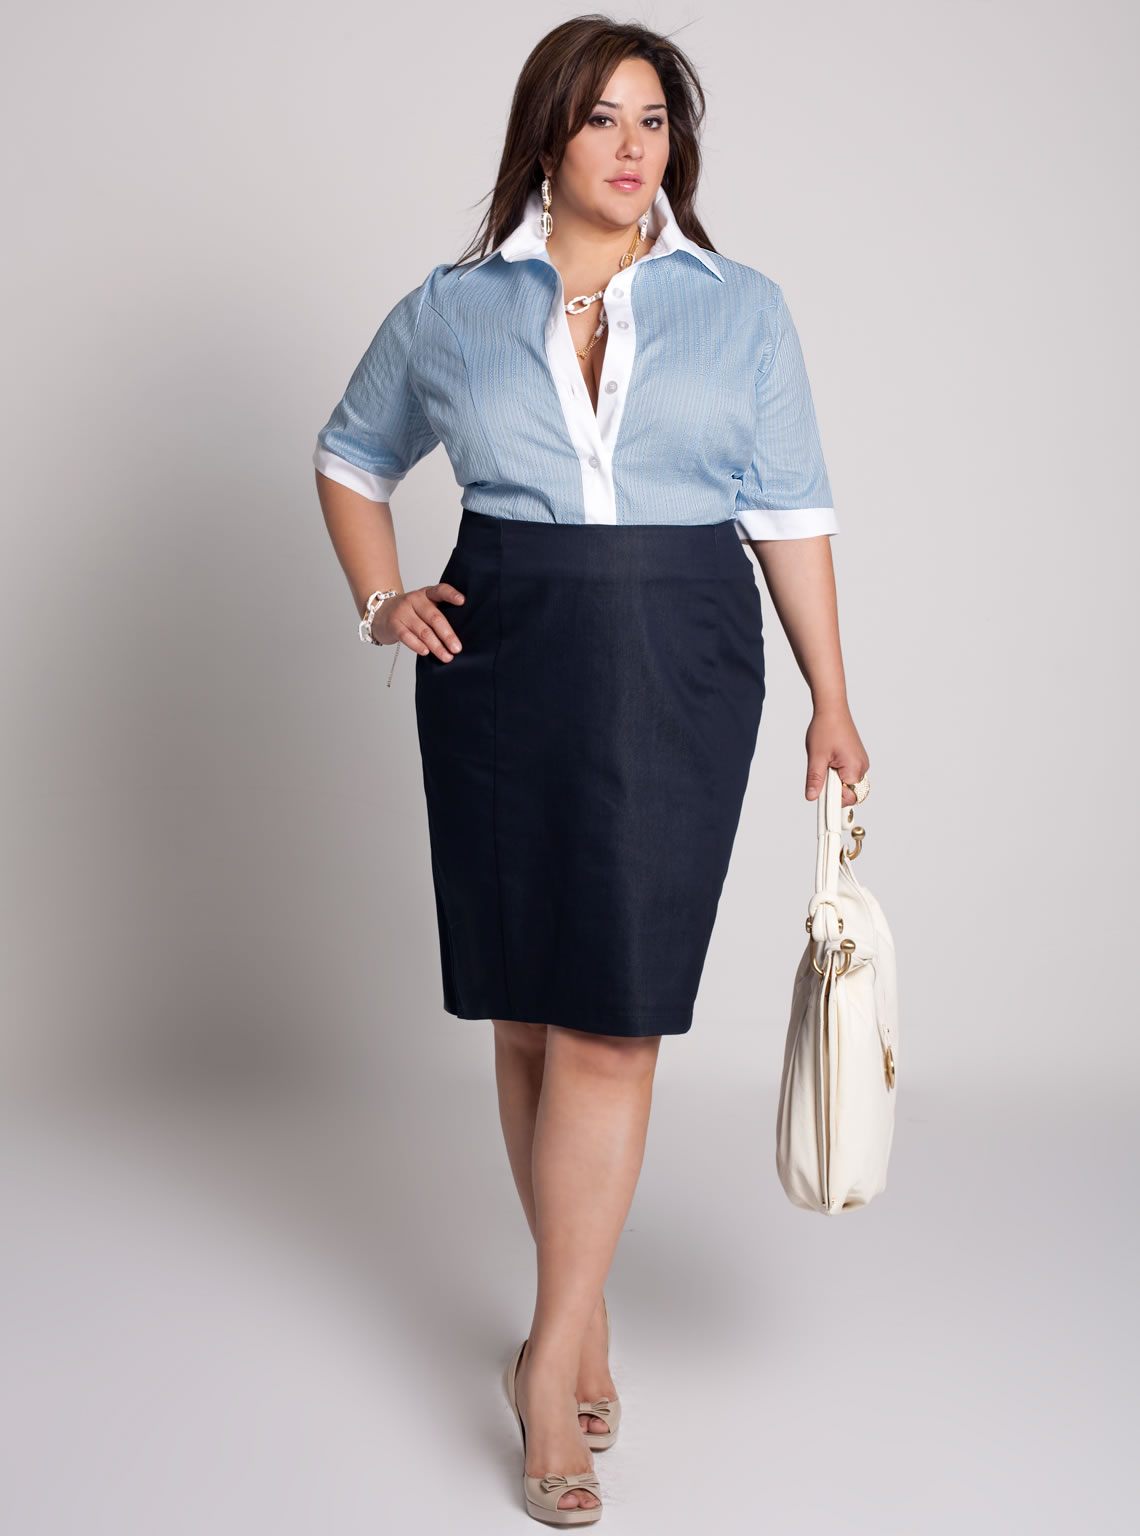 Kohl's plus-size clothing for women is made with quality materials and attention to fit, making it the ideal choice for both everyday staples and special pieces. Look and feel .